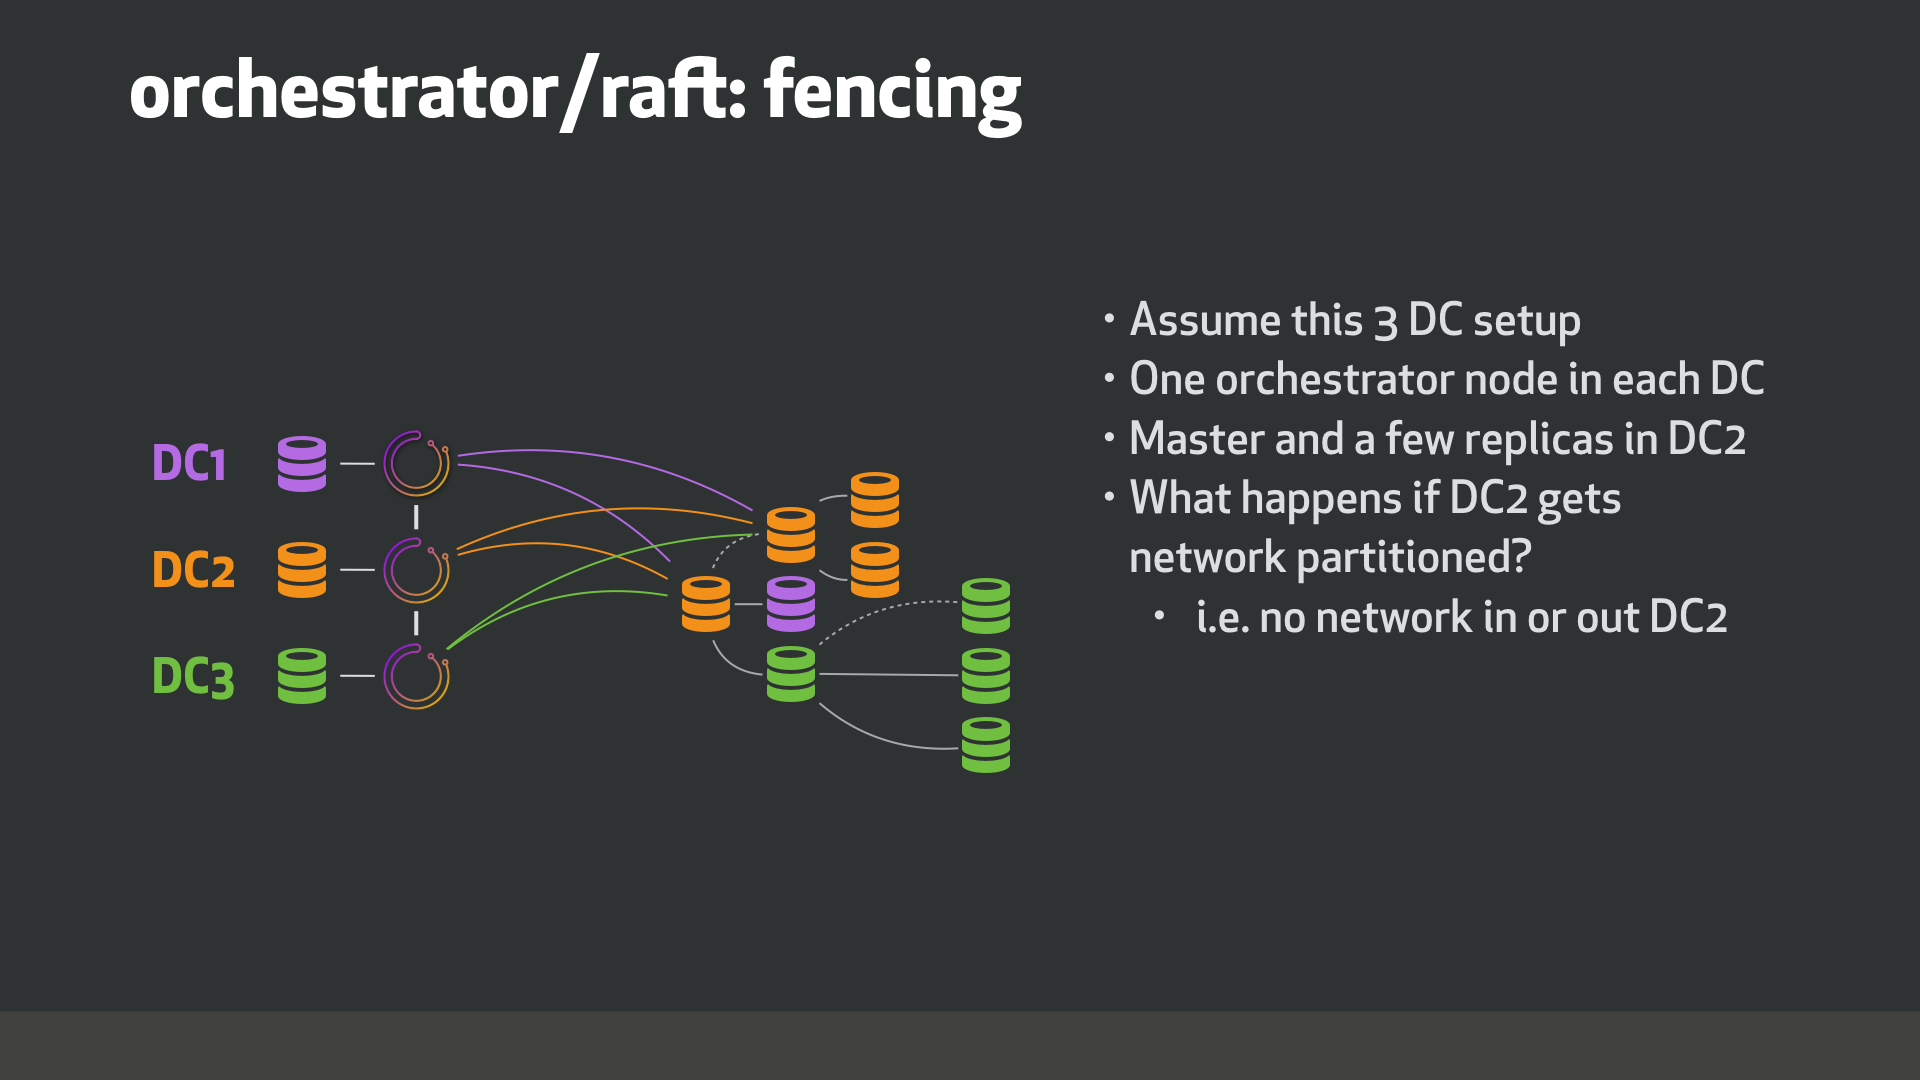 orchestrator/raft, 3 DCs